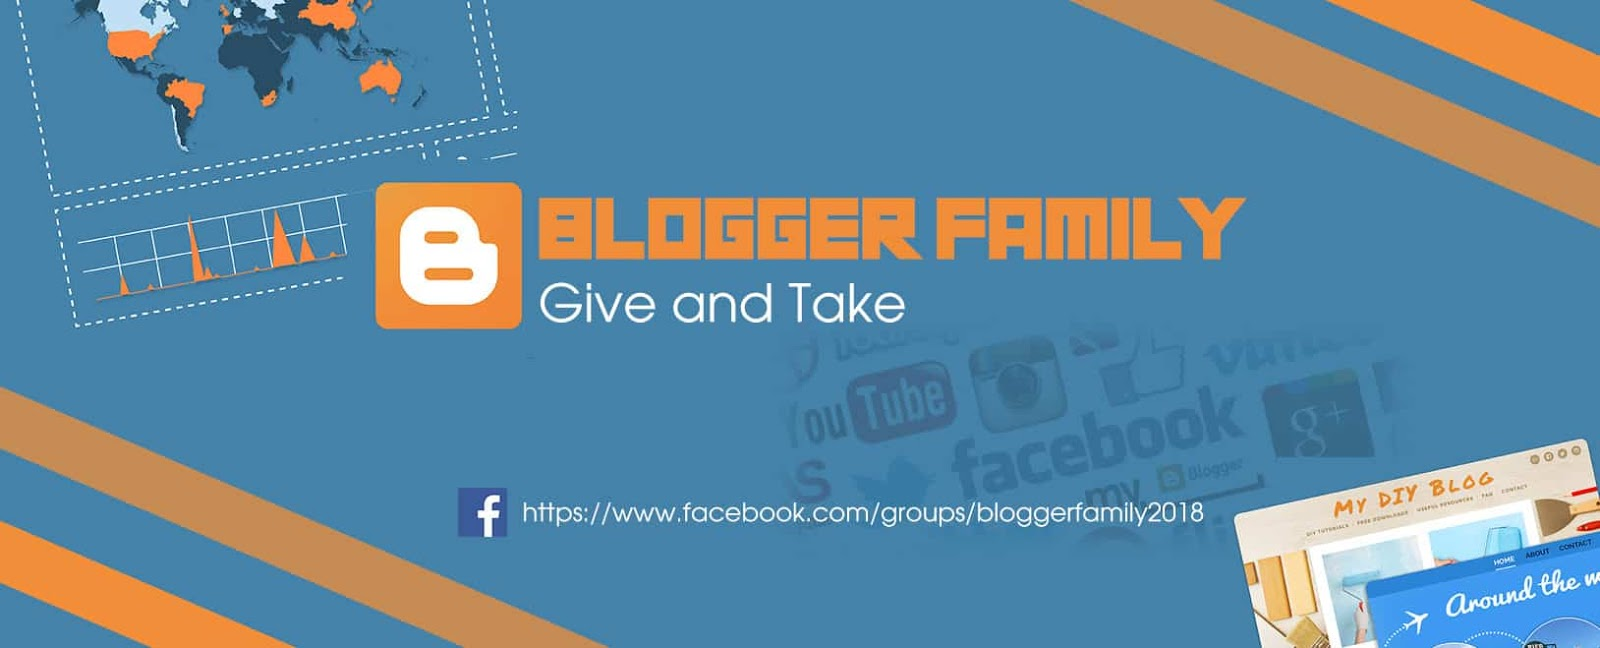 Blogger Family Group - Give and take - Gia đình Blogger